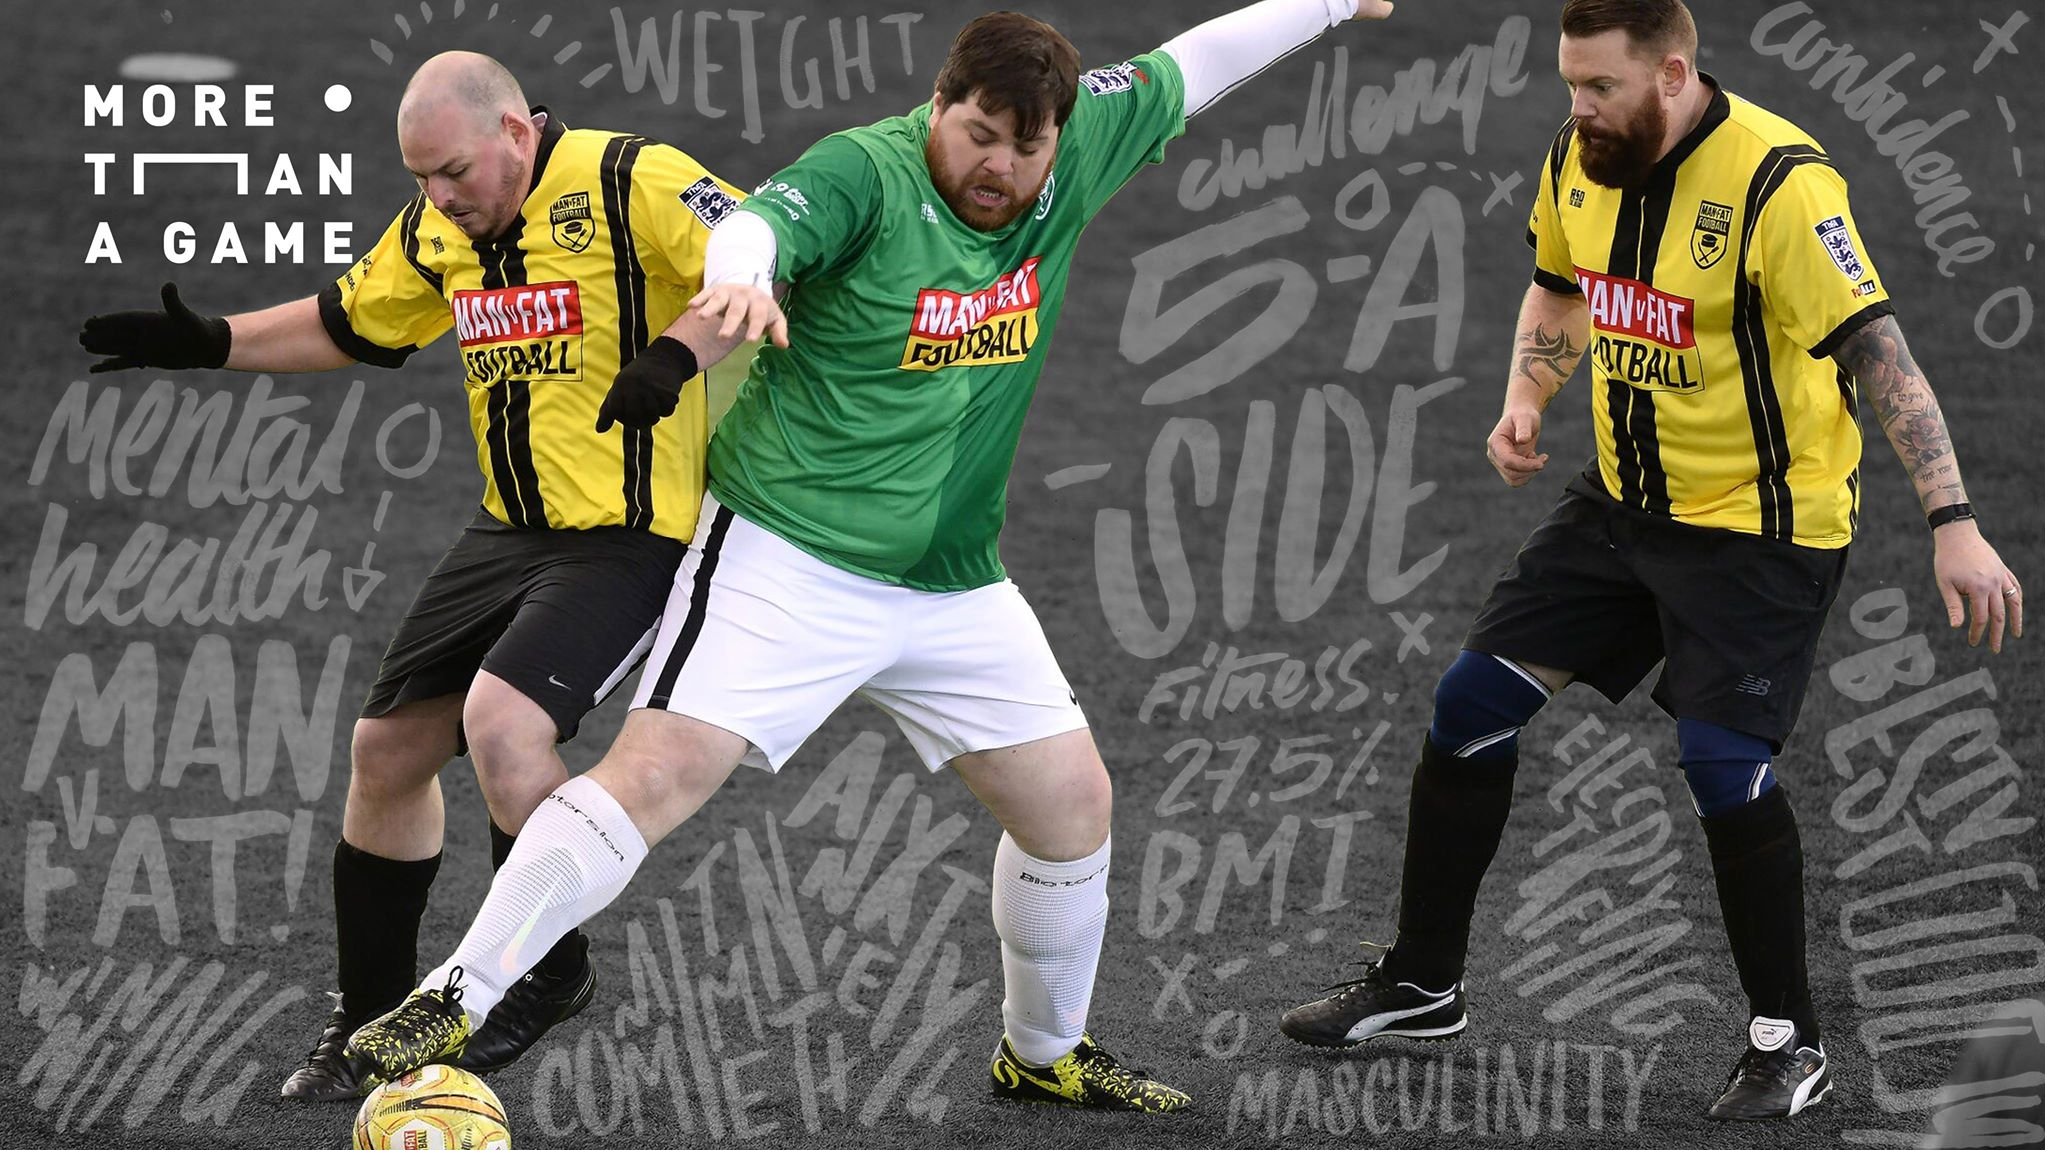 Five-A-Side: How A National Community Is Helping People Overcome Mental Health Issues